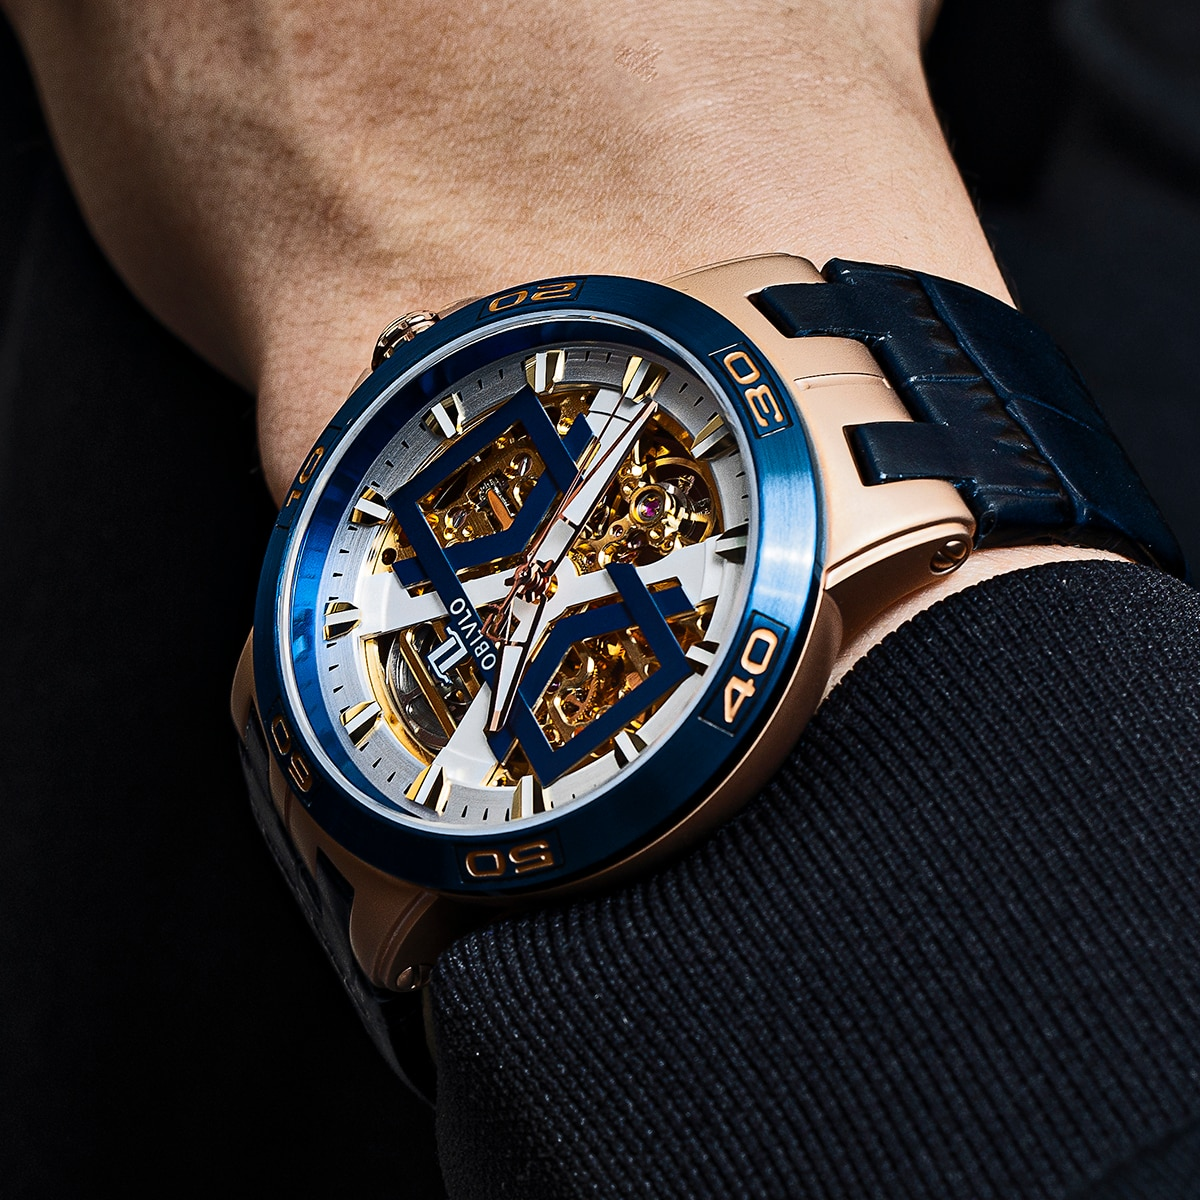 OBLVLO New Design Rose Gold Automatic Watches With Skeleton Dial Leather Strap Waterproof Big Watch UM